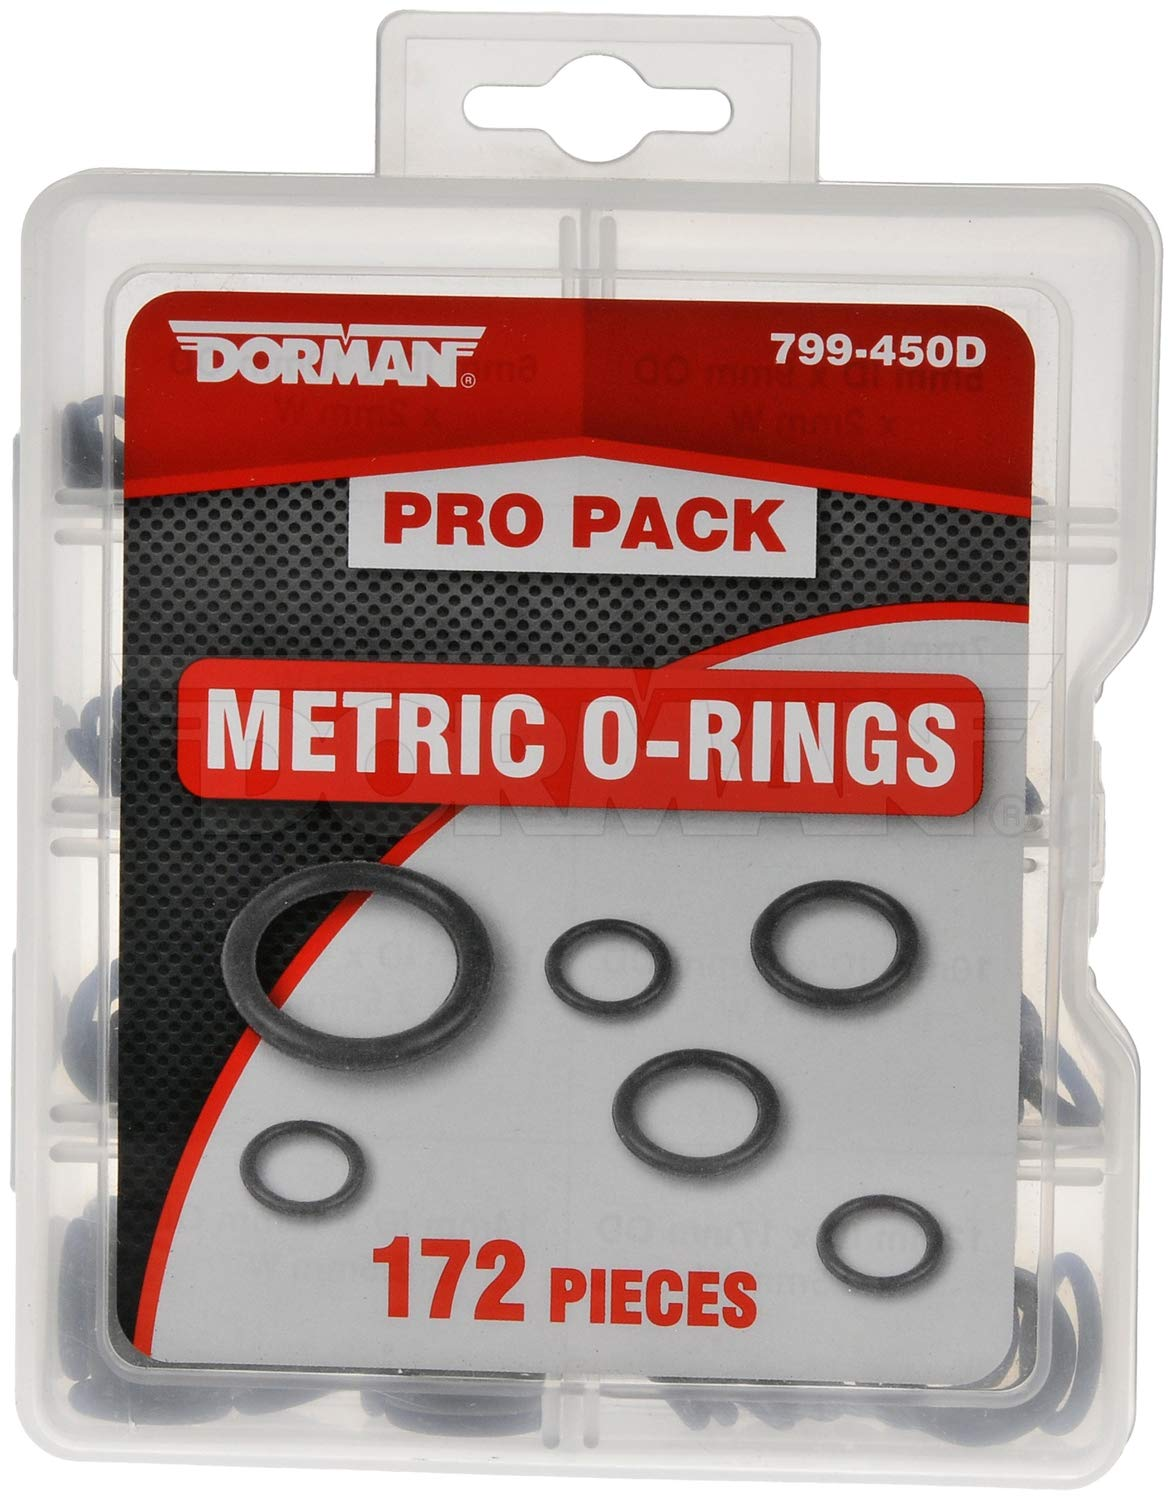 DORMAN 799-450D Pro Pack Metric O-Rings 172 Pack